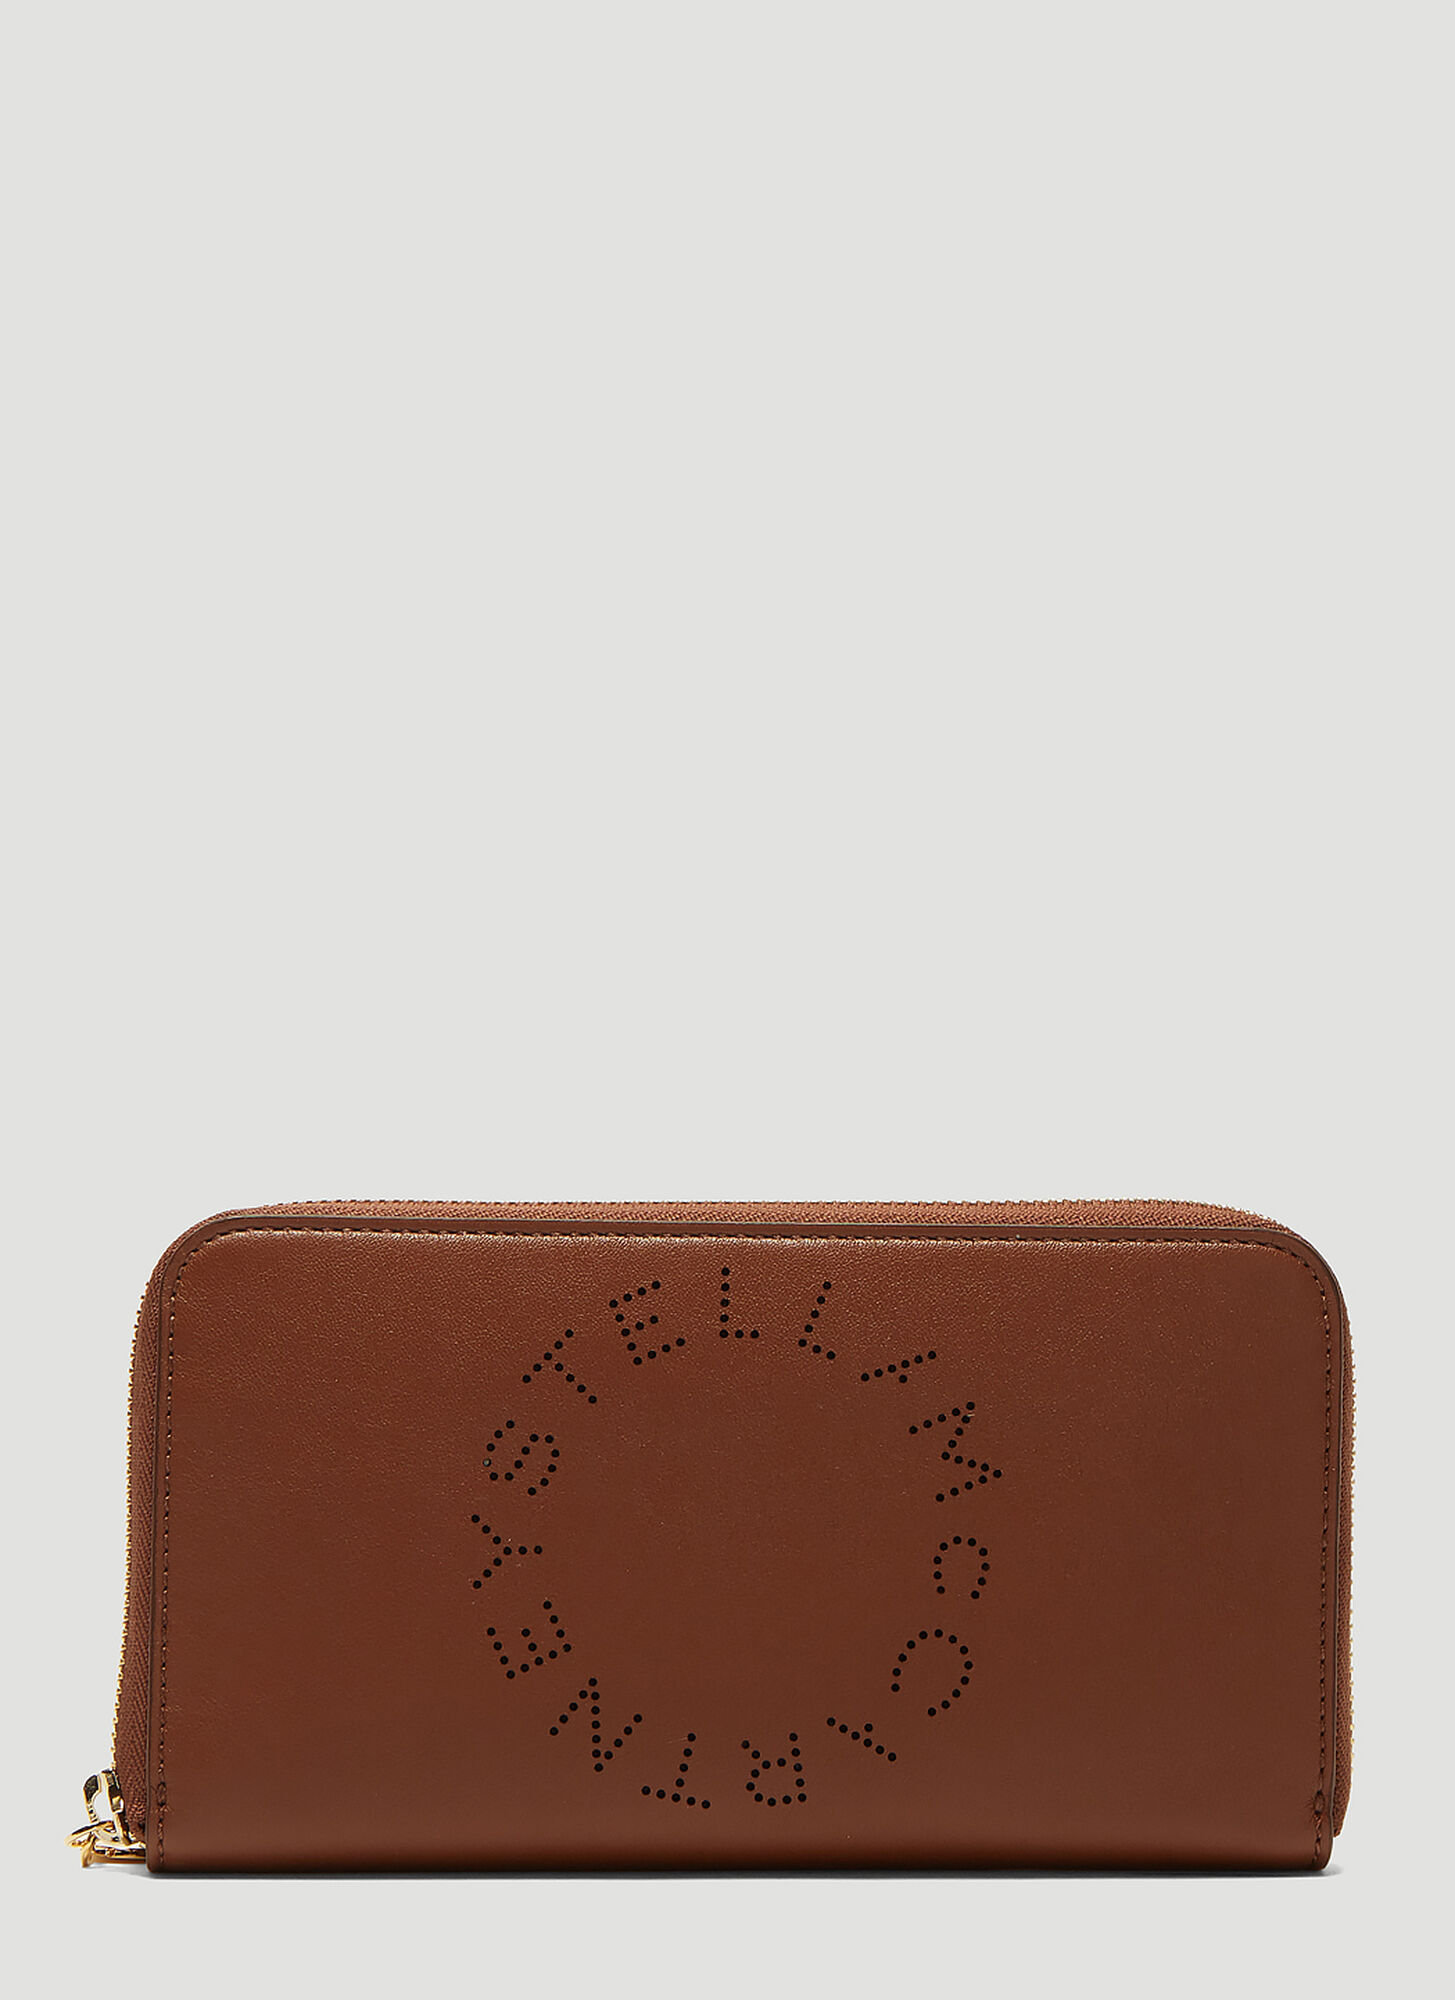 Stella McCartney Perforated Logo Zip-Around Wallet in Brown